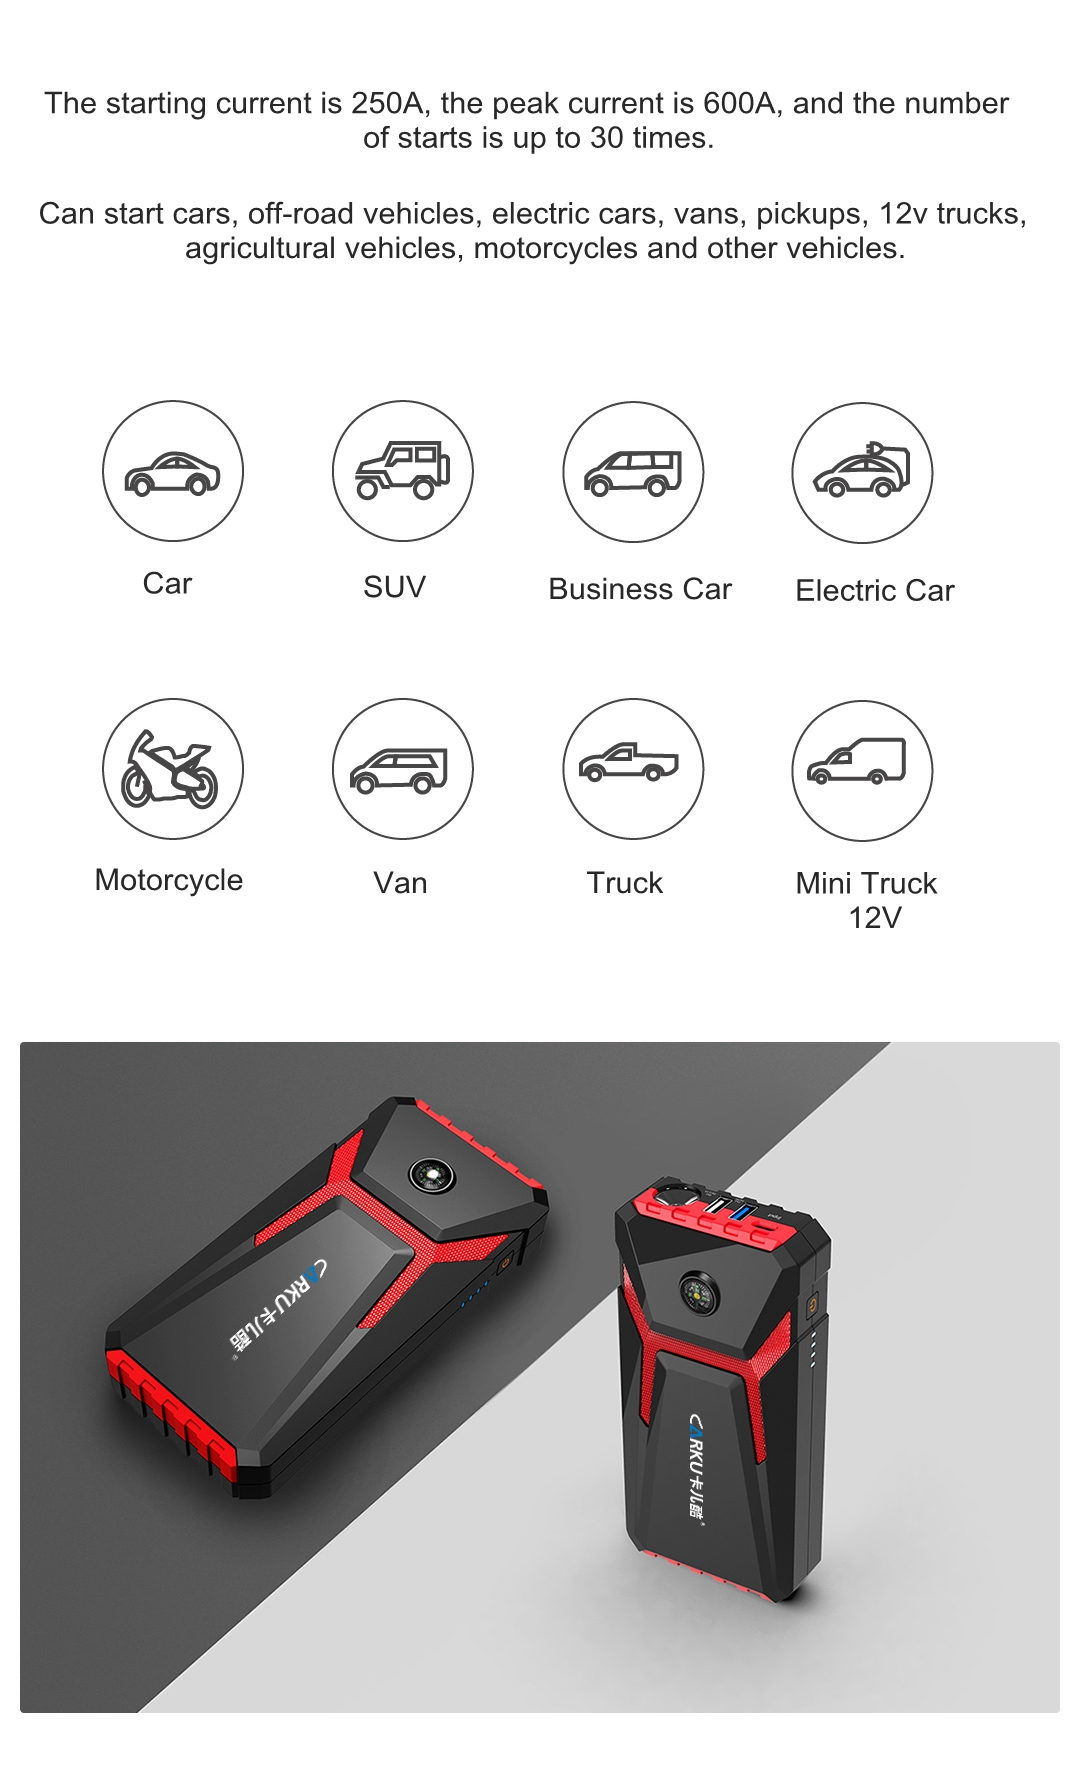 XIAOMI CARKU X6 12V 10000mAh Emergency Jump Starter Booster Multi-functional LED Light Compass SOS Mode Power Bank Q3.0 Fast Charging Auto Power Source